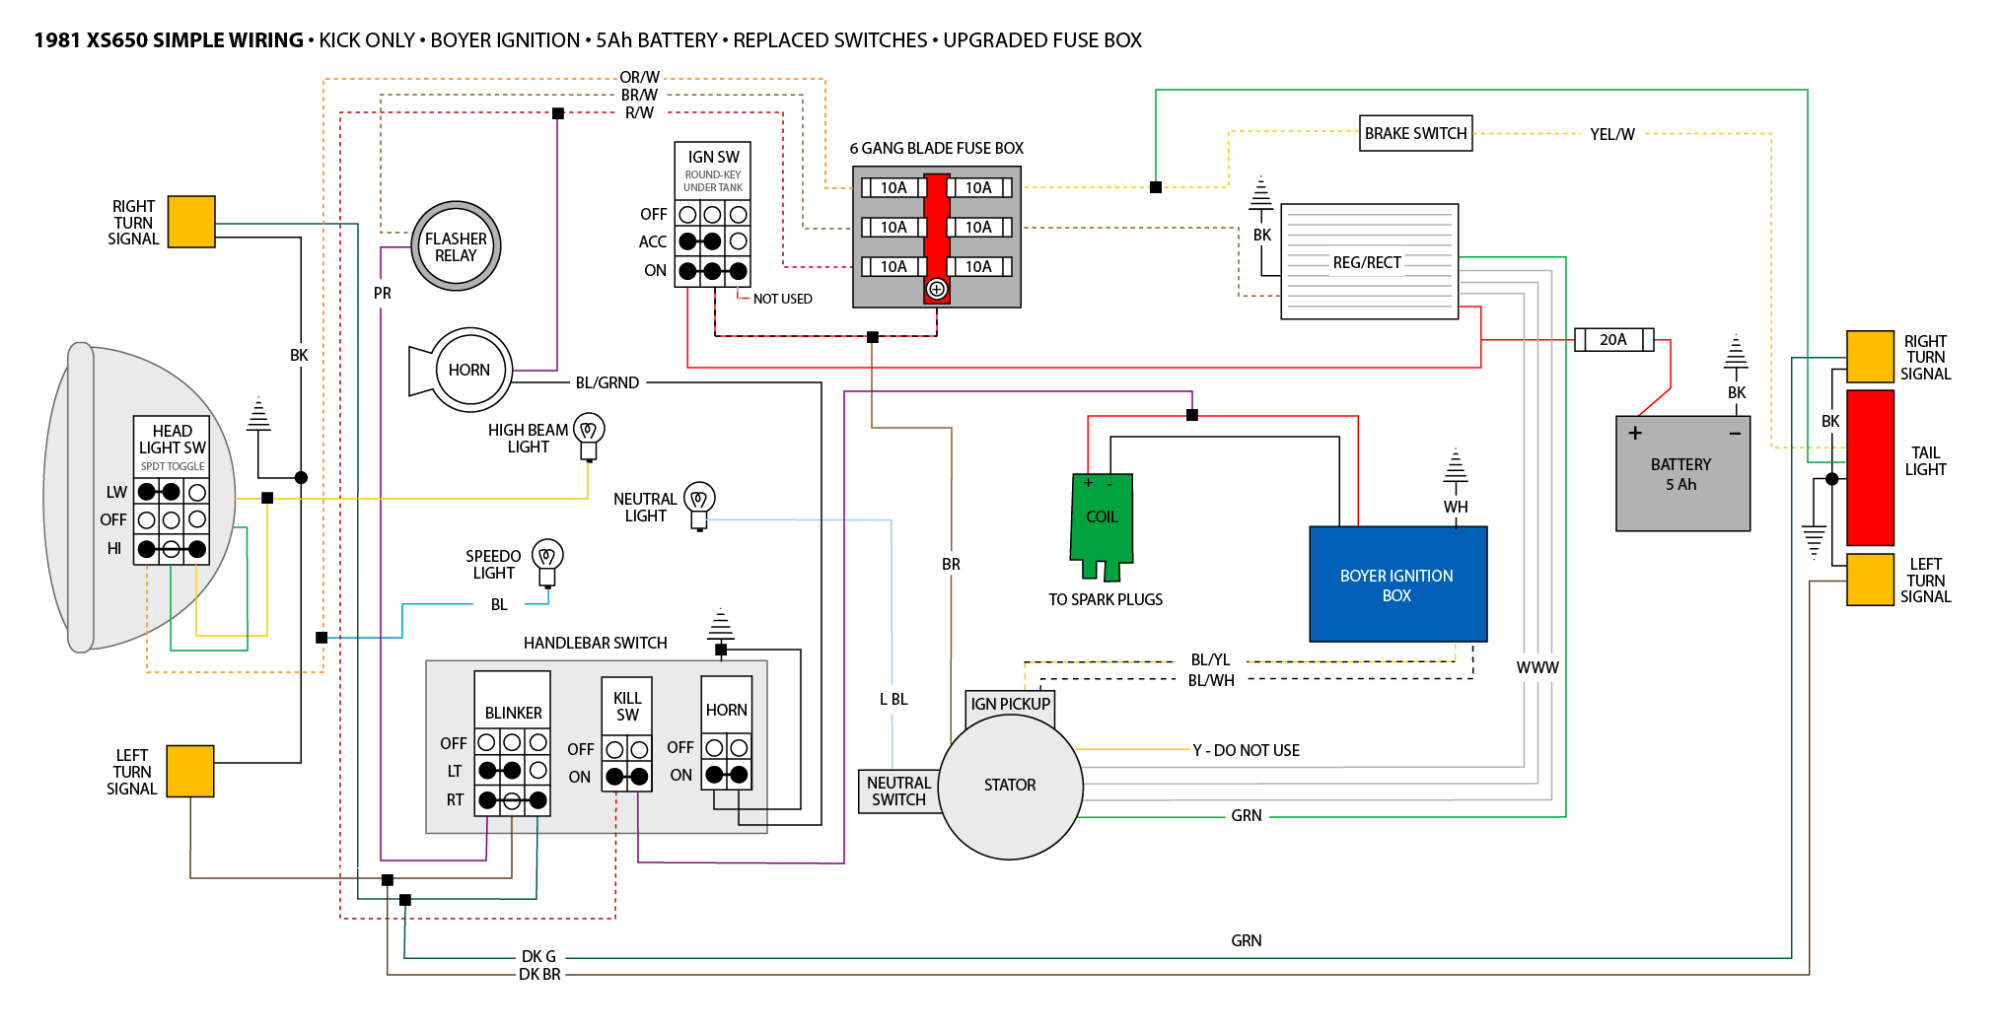 hight resolution of xs650 81 diagram kickonly png